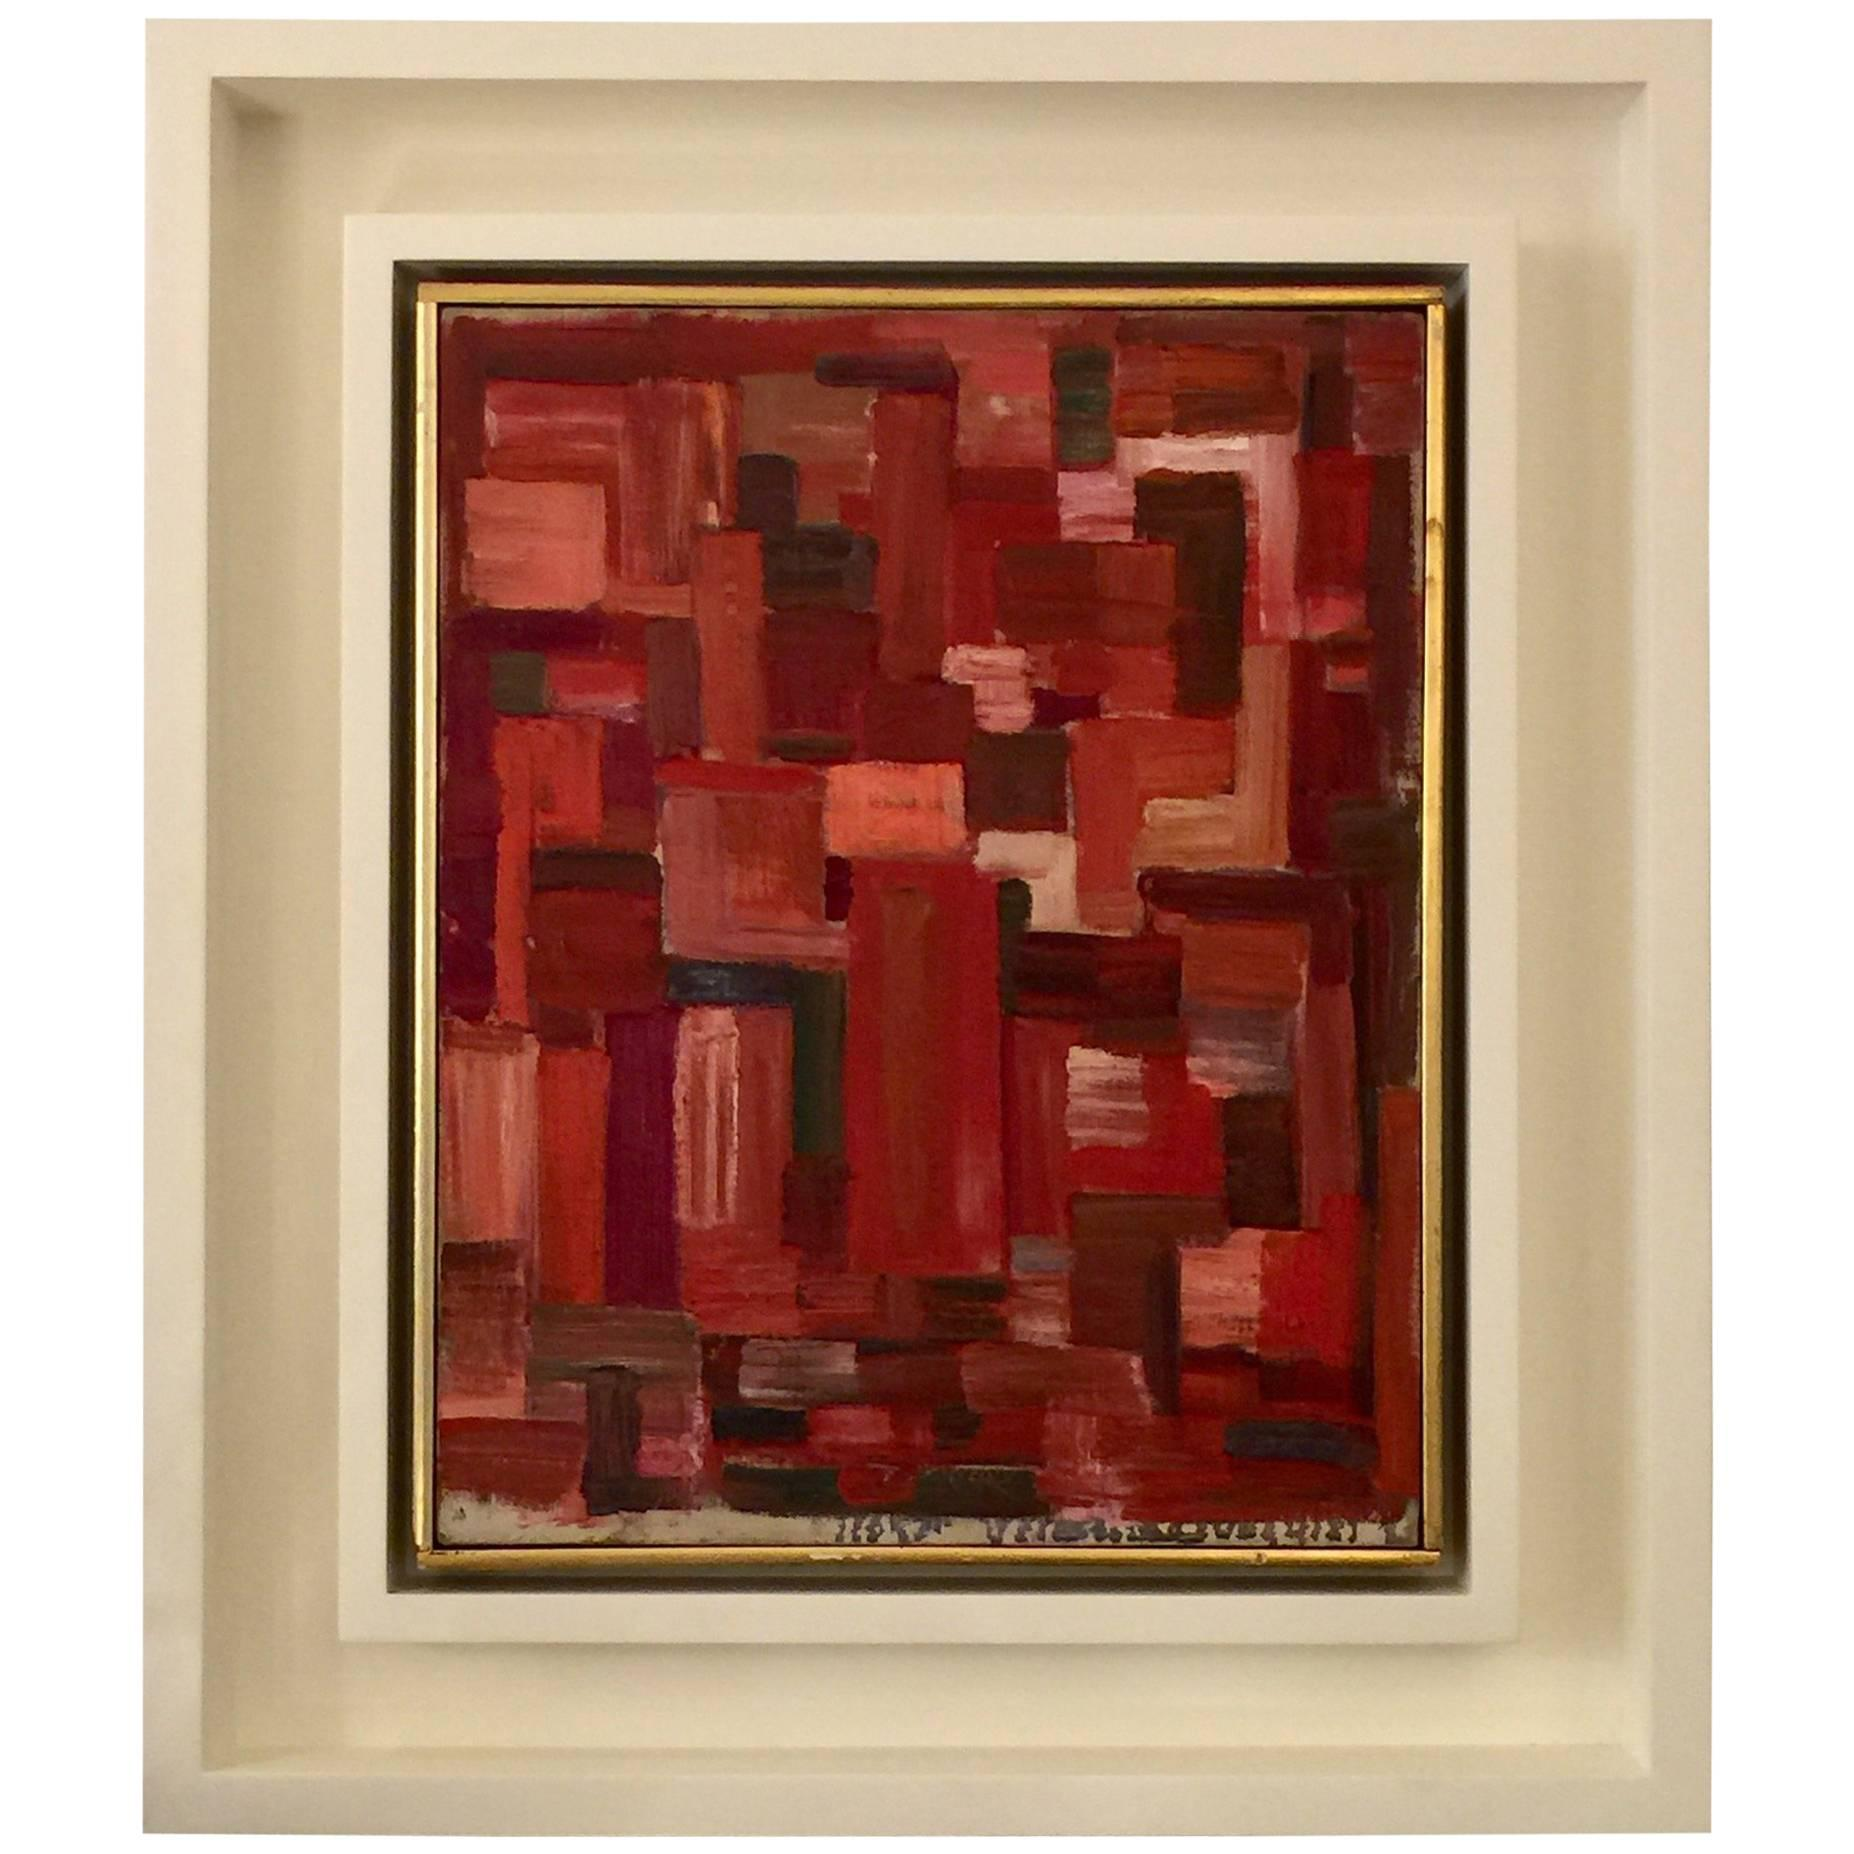 Signed Havers Oil on Canvas Framed Abstract Cubist Painting